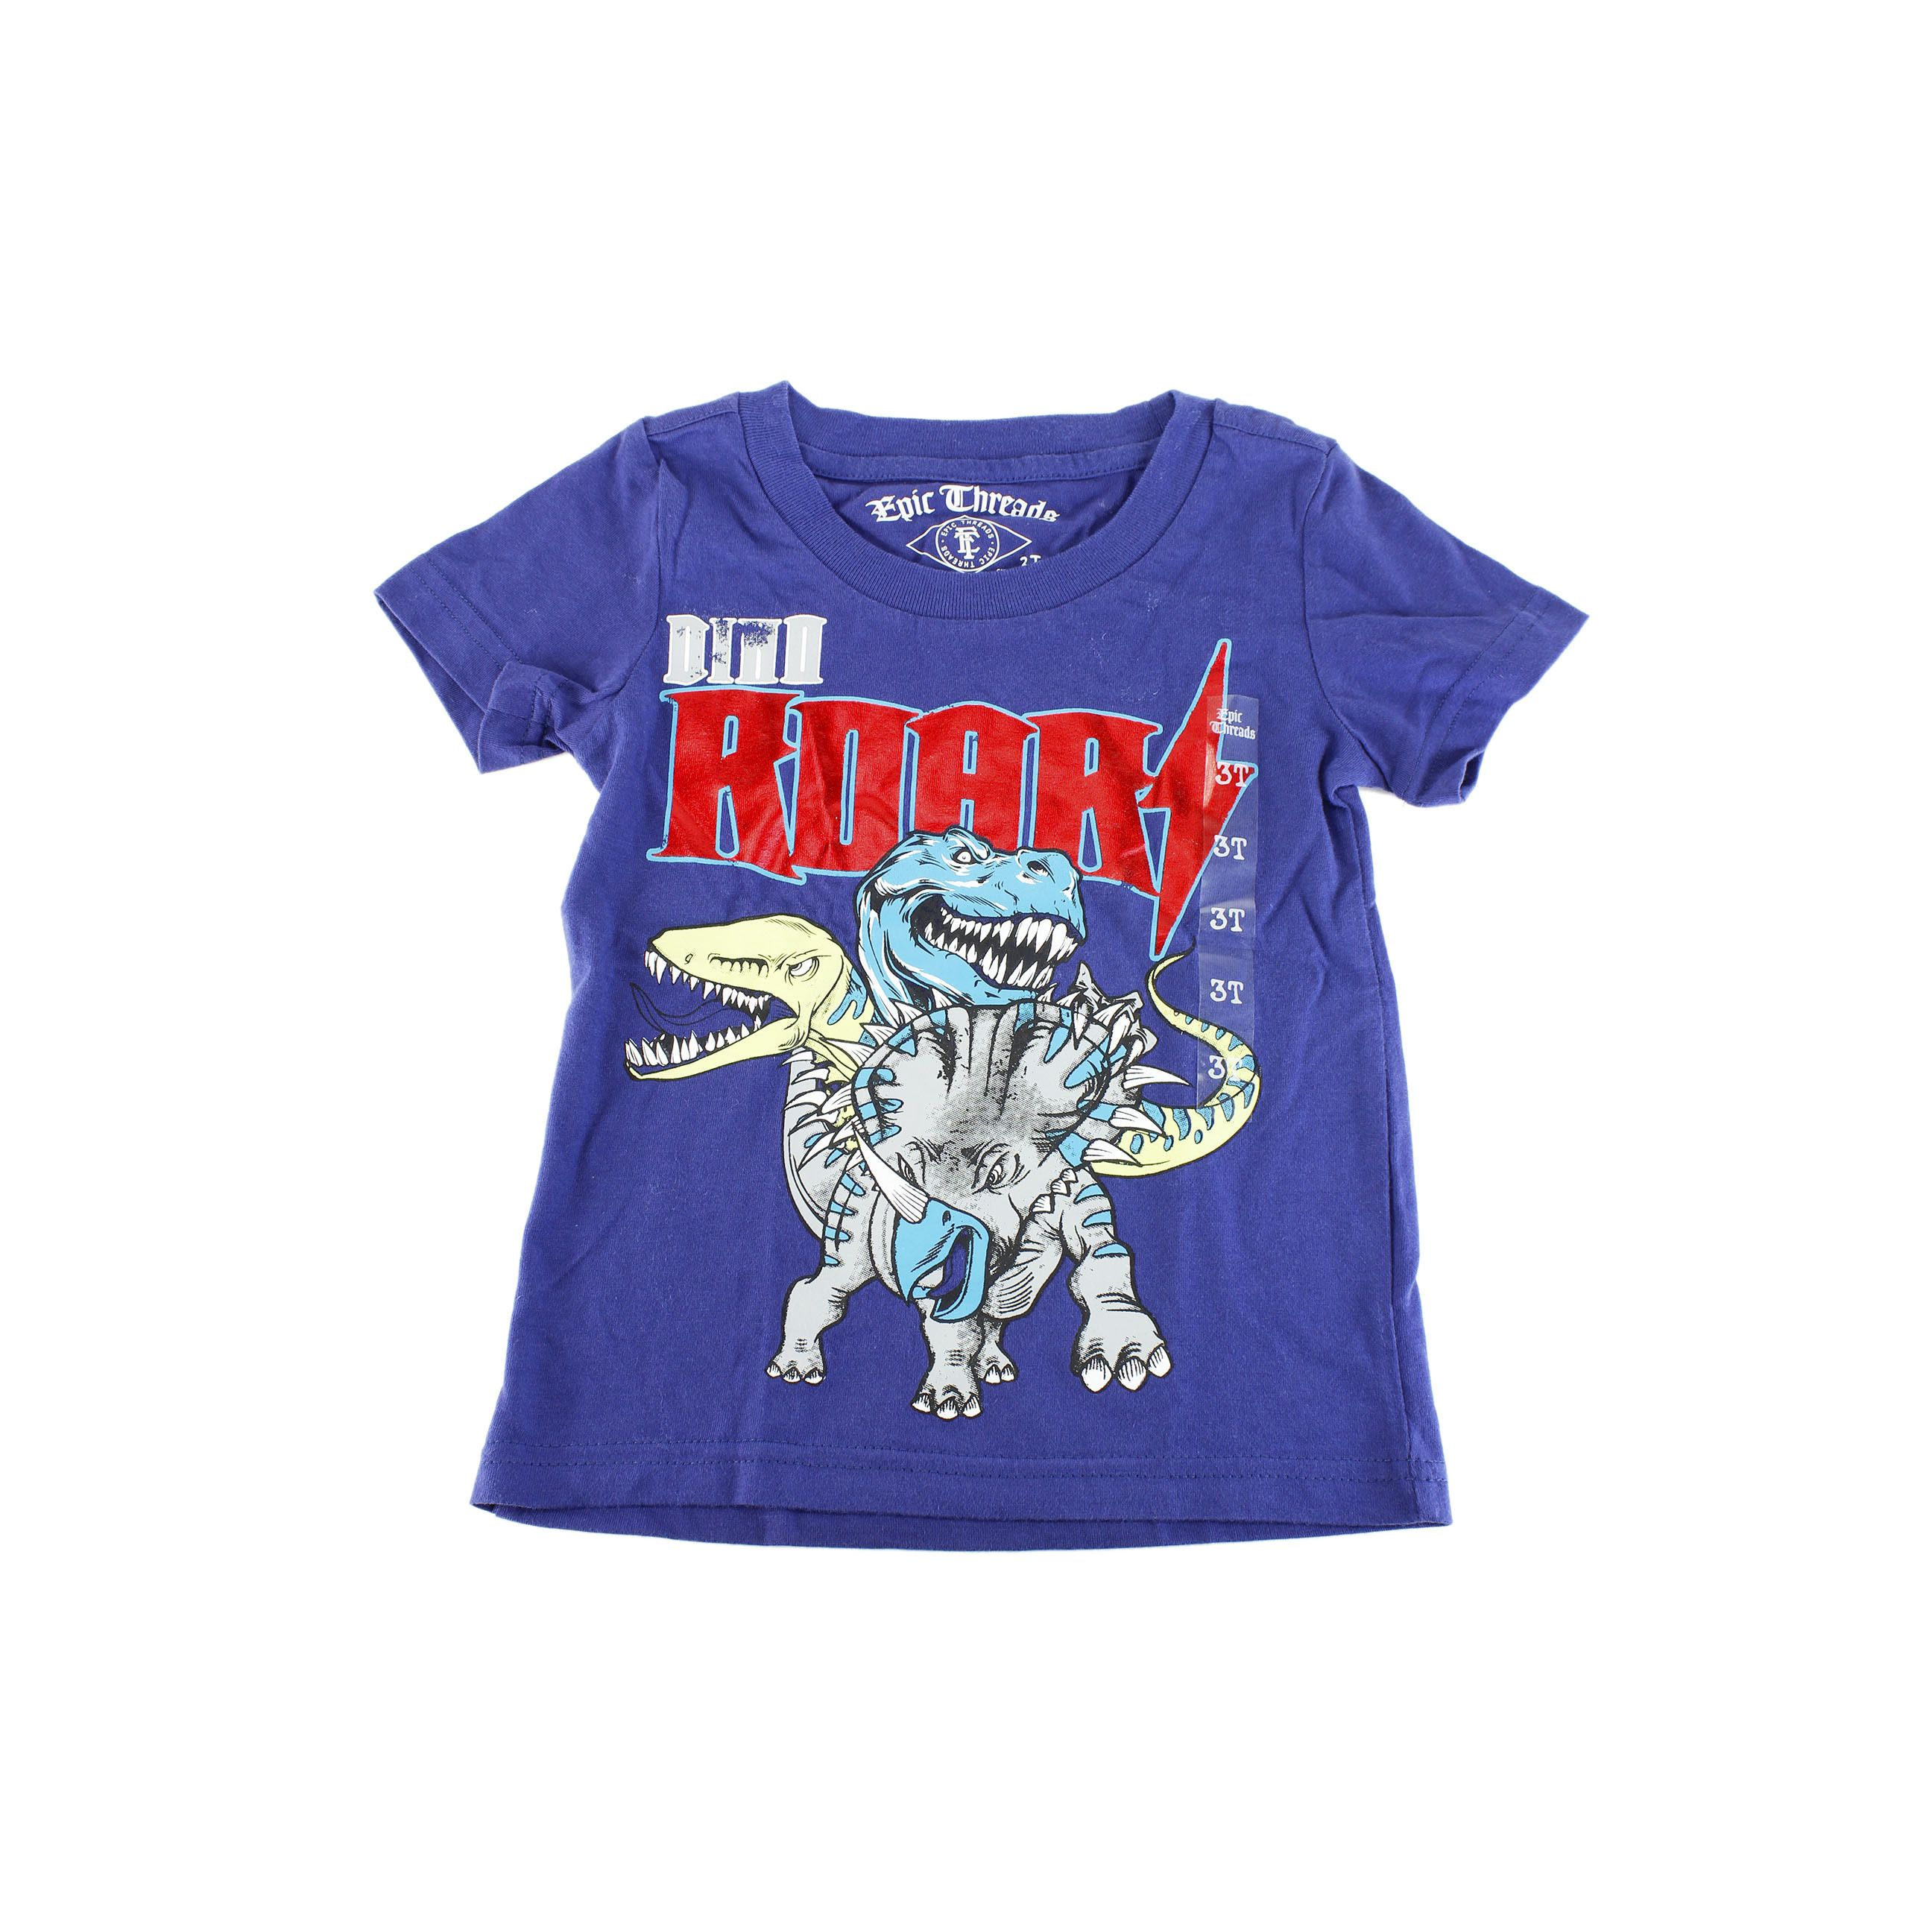 Epic Threads Baby Boy's Short Sleeve Shirt